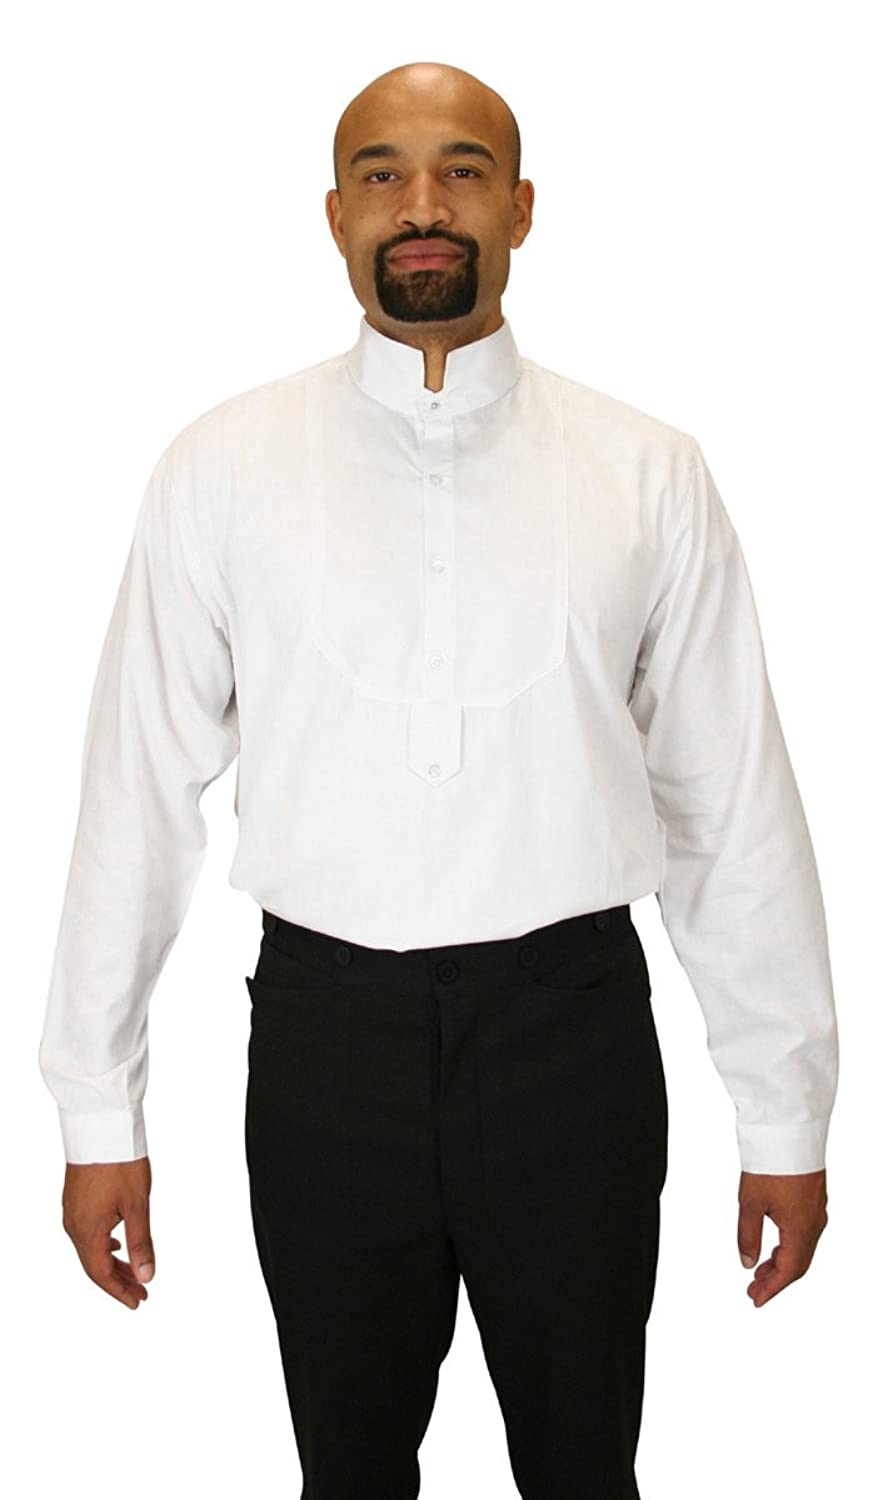 New Vintage Tuxedos, Tailcoats, Morning Suits, Dinner Jackets Mens Victorian Collar Dress Shirt $59.95 AT vintagedancer.com